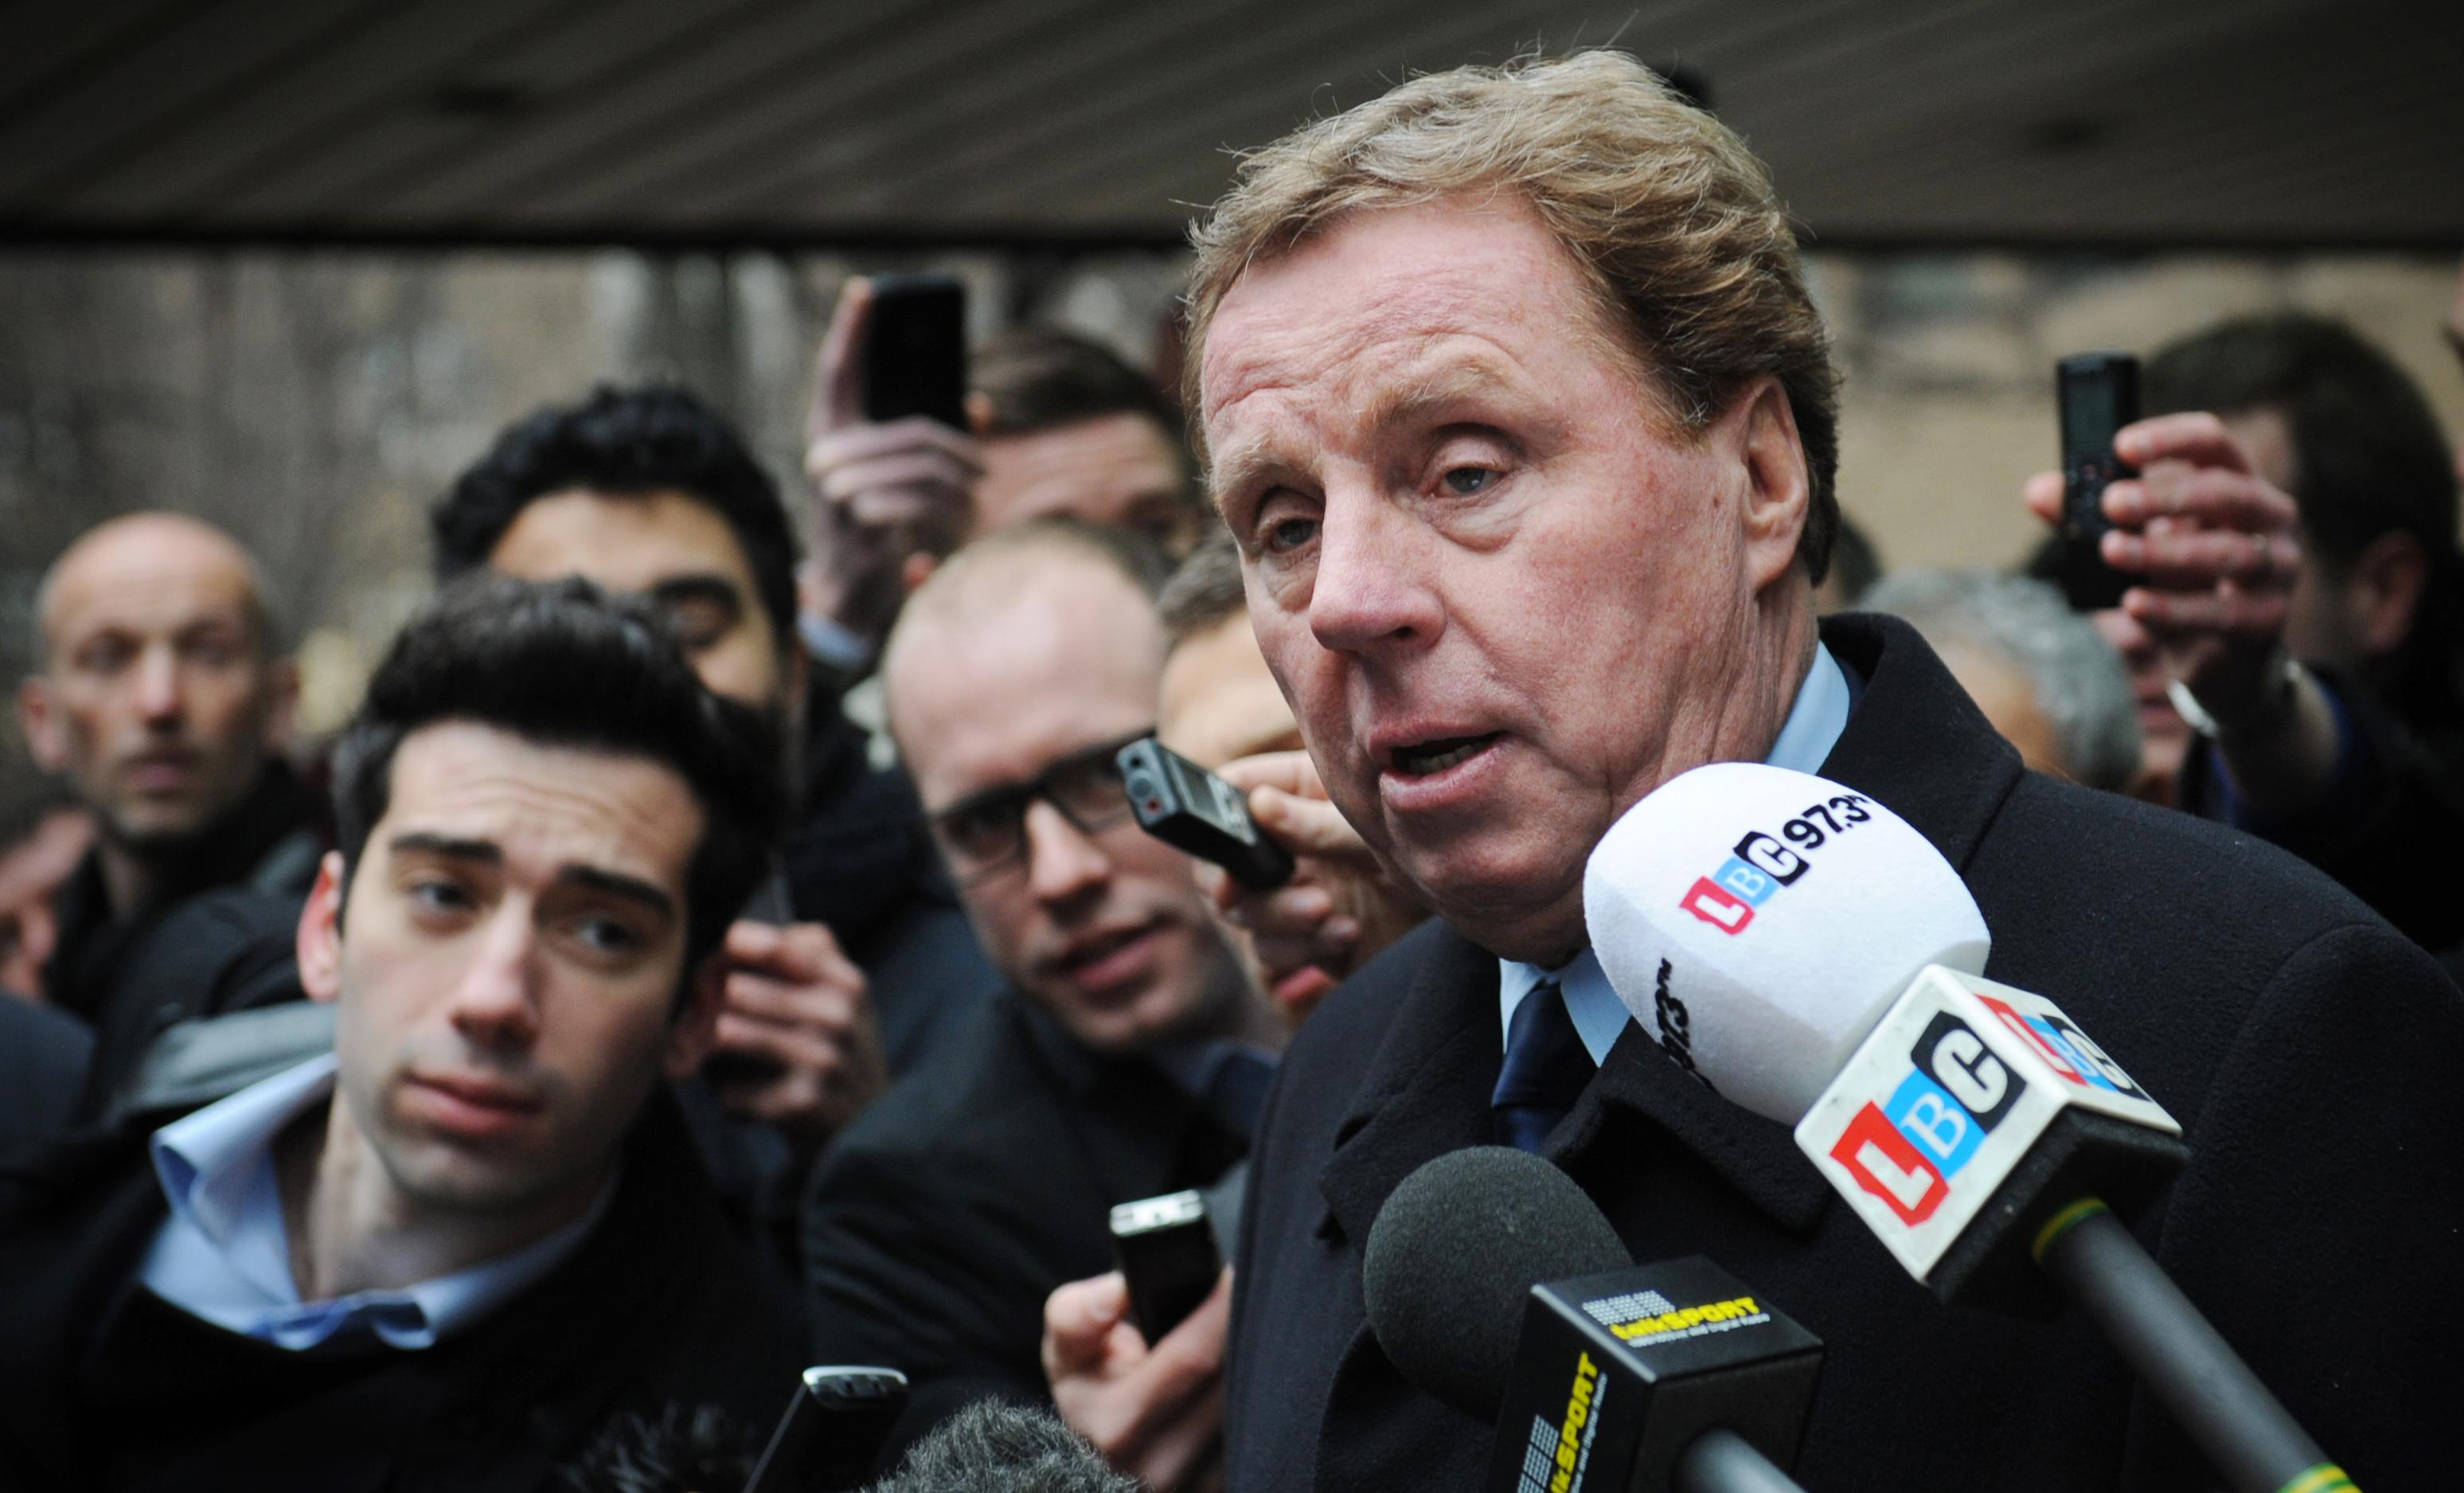 Harry Redknapp leaves Southwark Crown Court after being cleared of tax evasion in 2012 (Stefan Rousseau/PA)